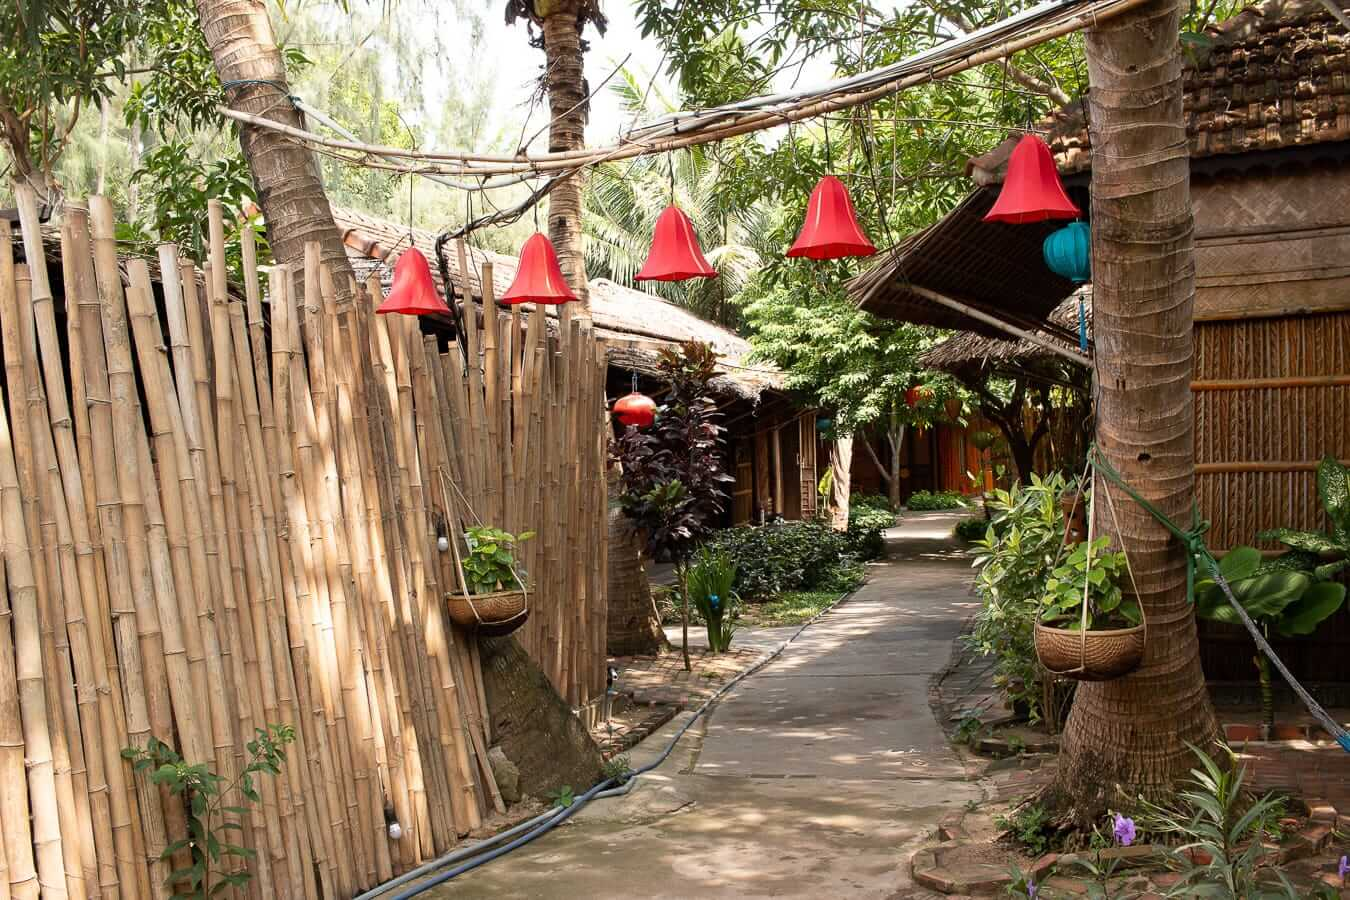 Under The Coconut Tree Hostel: Where to stay in Hoi An